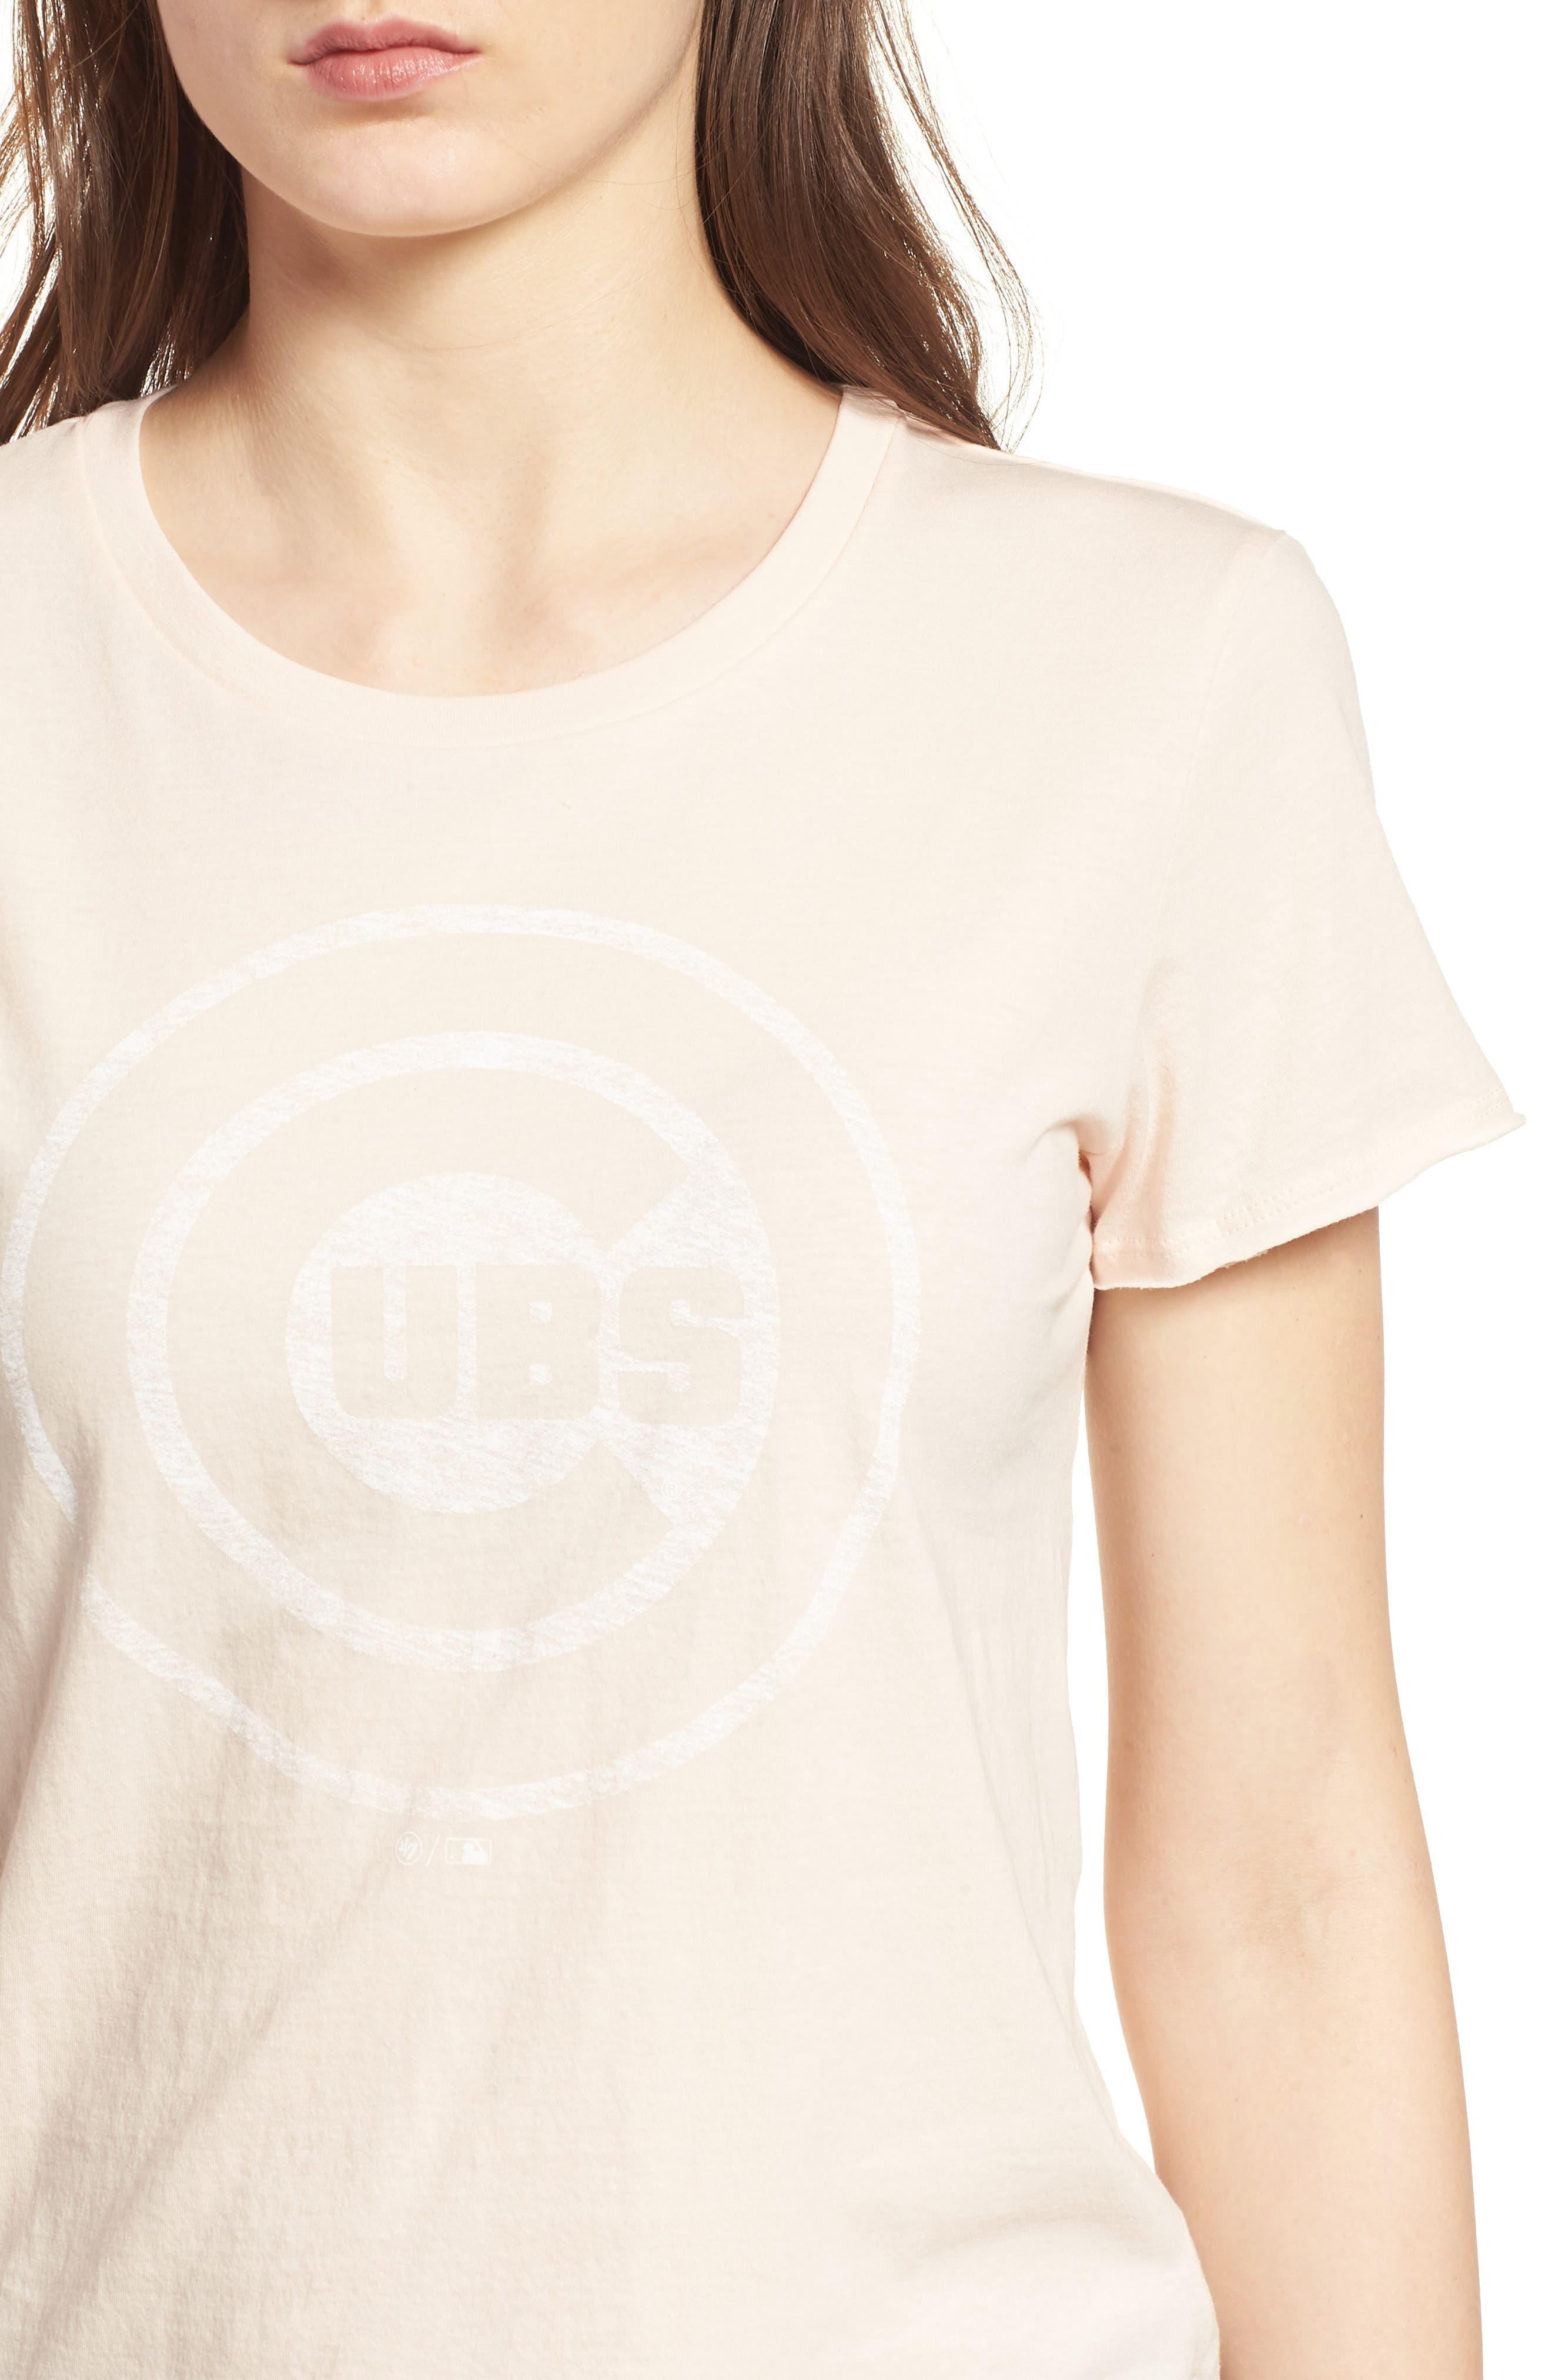 Chicago Cubs Fader Letter Tee,                             Alternate thumbnail 4, color,                             650